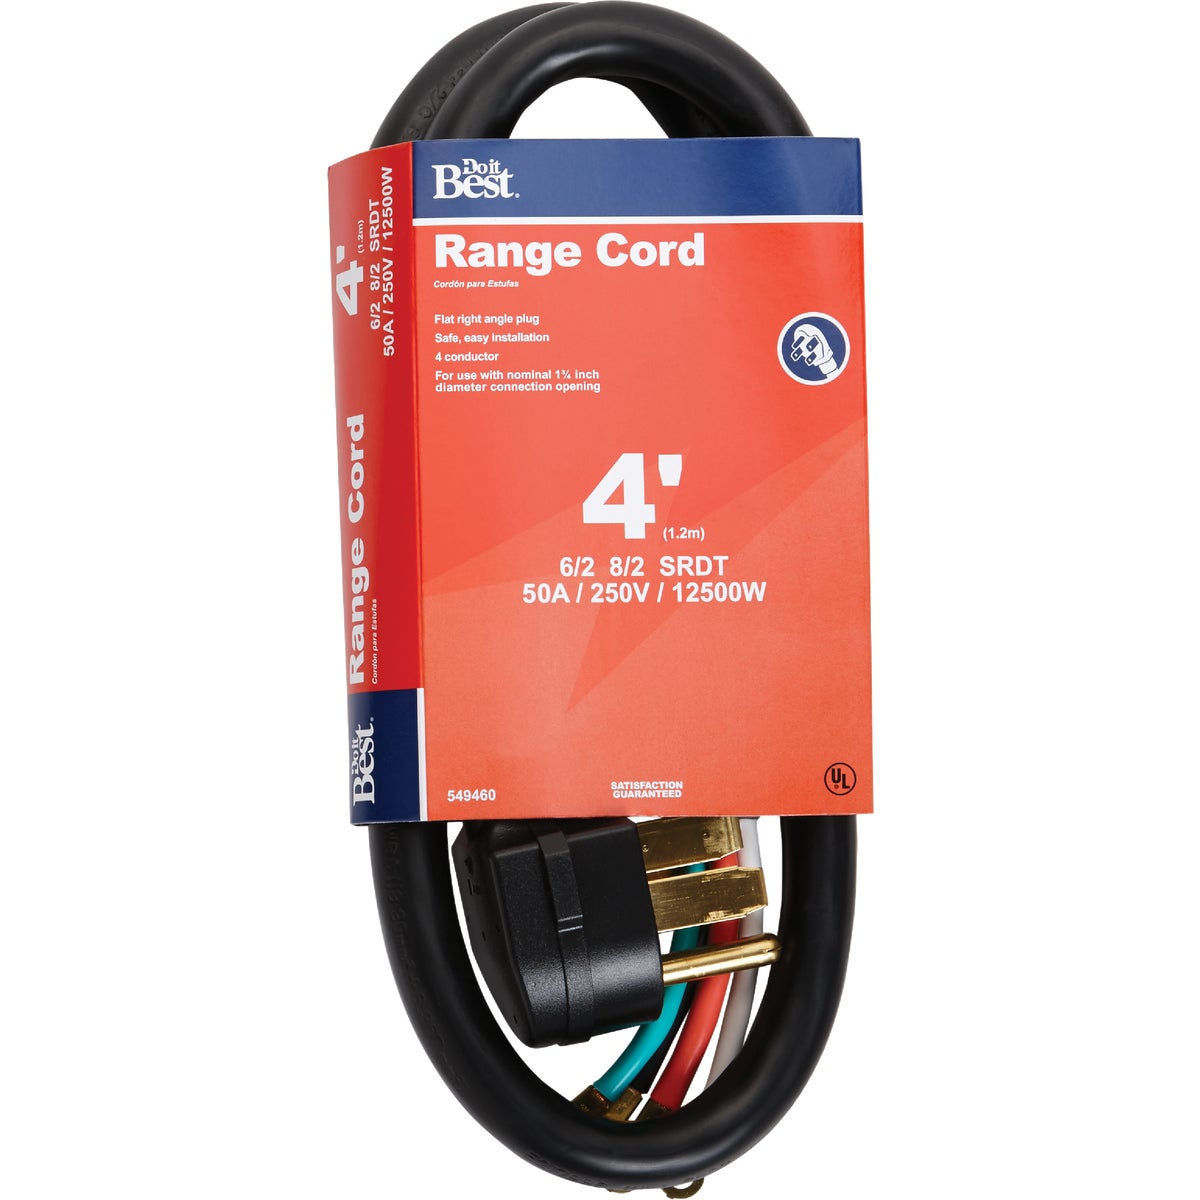 4' 6/2 + 8/2 RANGE CORD - 550761 by Coleman Cable Hwg